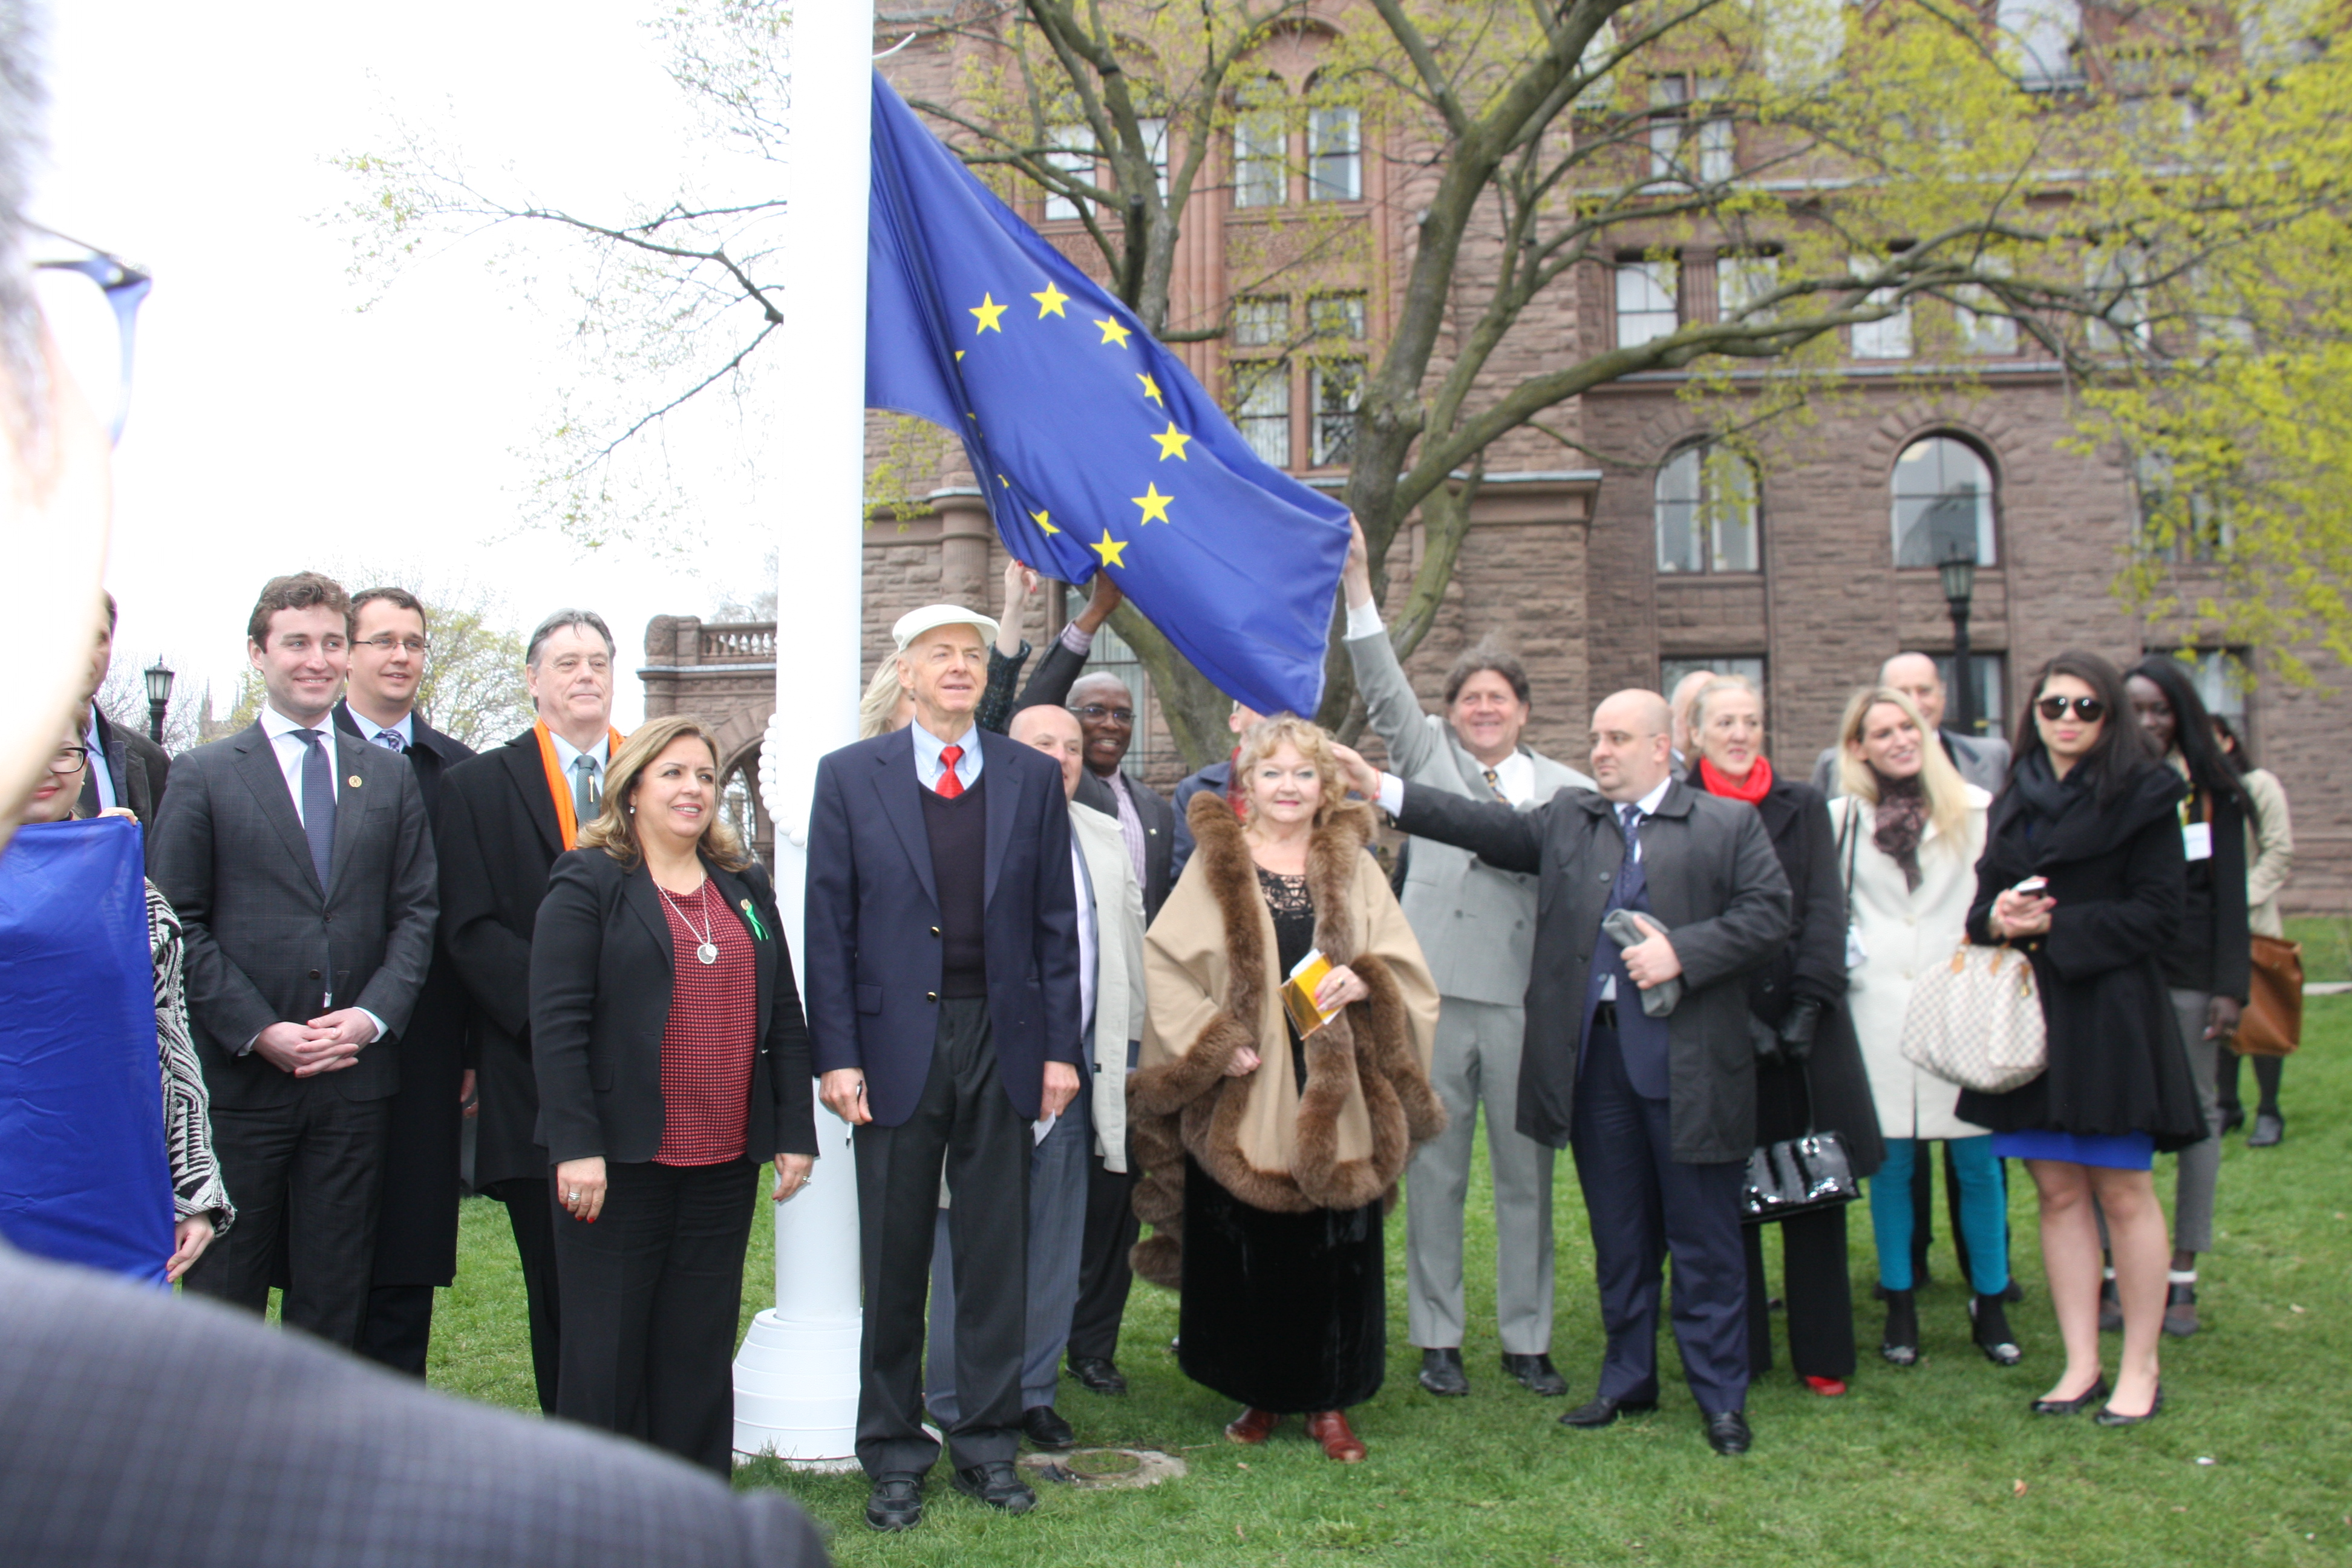 Europe_Day_Yvan_Baker_MPP_Paul_Miller_MPP_Cristina_Martins_MPP_Tony_Ruprecht_former_MPP_Violette_Goldyn_Moussouni_May_2_2016_Queens_Park_European_Club_Canada_Goldyn_Foto_IMG_8542